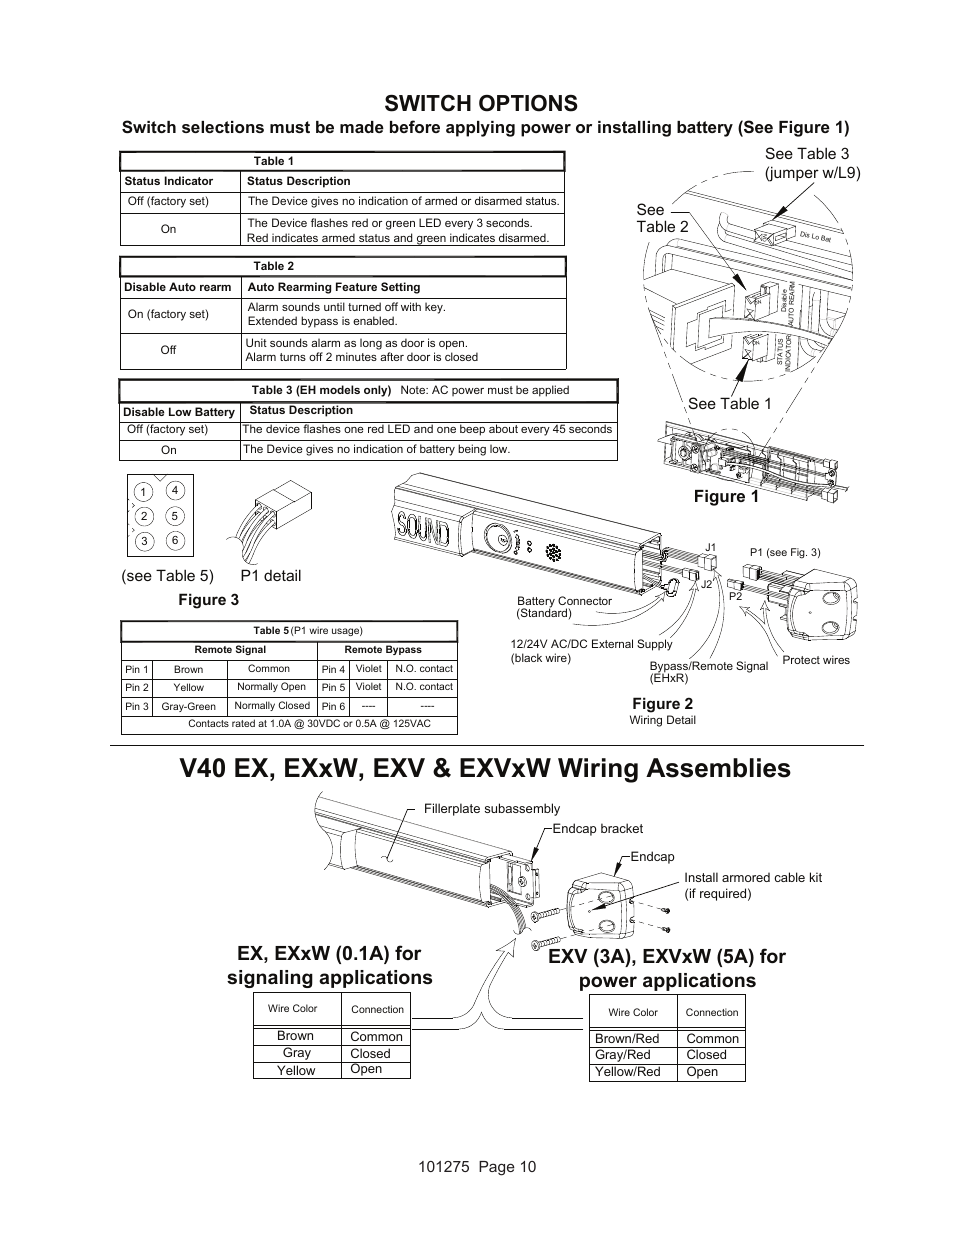 chrysler wiring diagrams free wiring diagrams weebly com v40 ex, exxw, exv & exvxw wiring assemblies, switch ... detex wiring diagrams #5